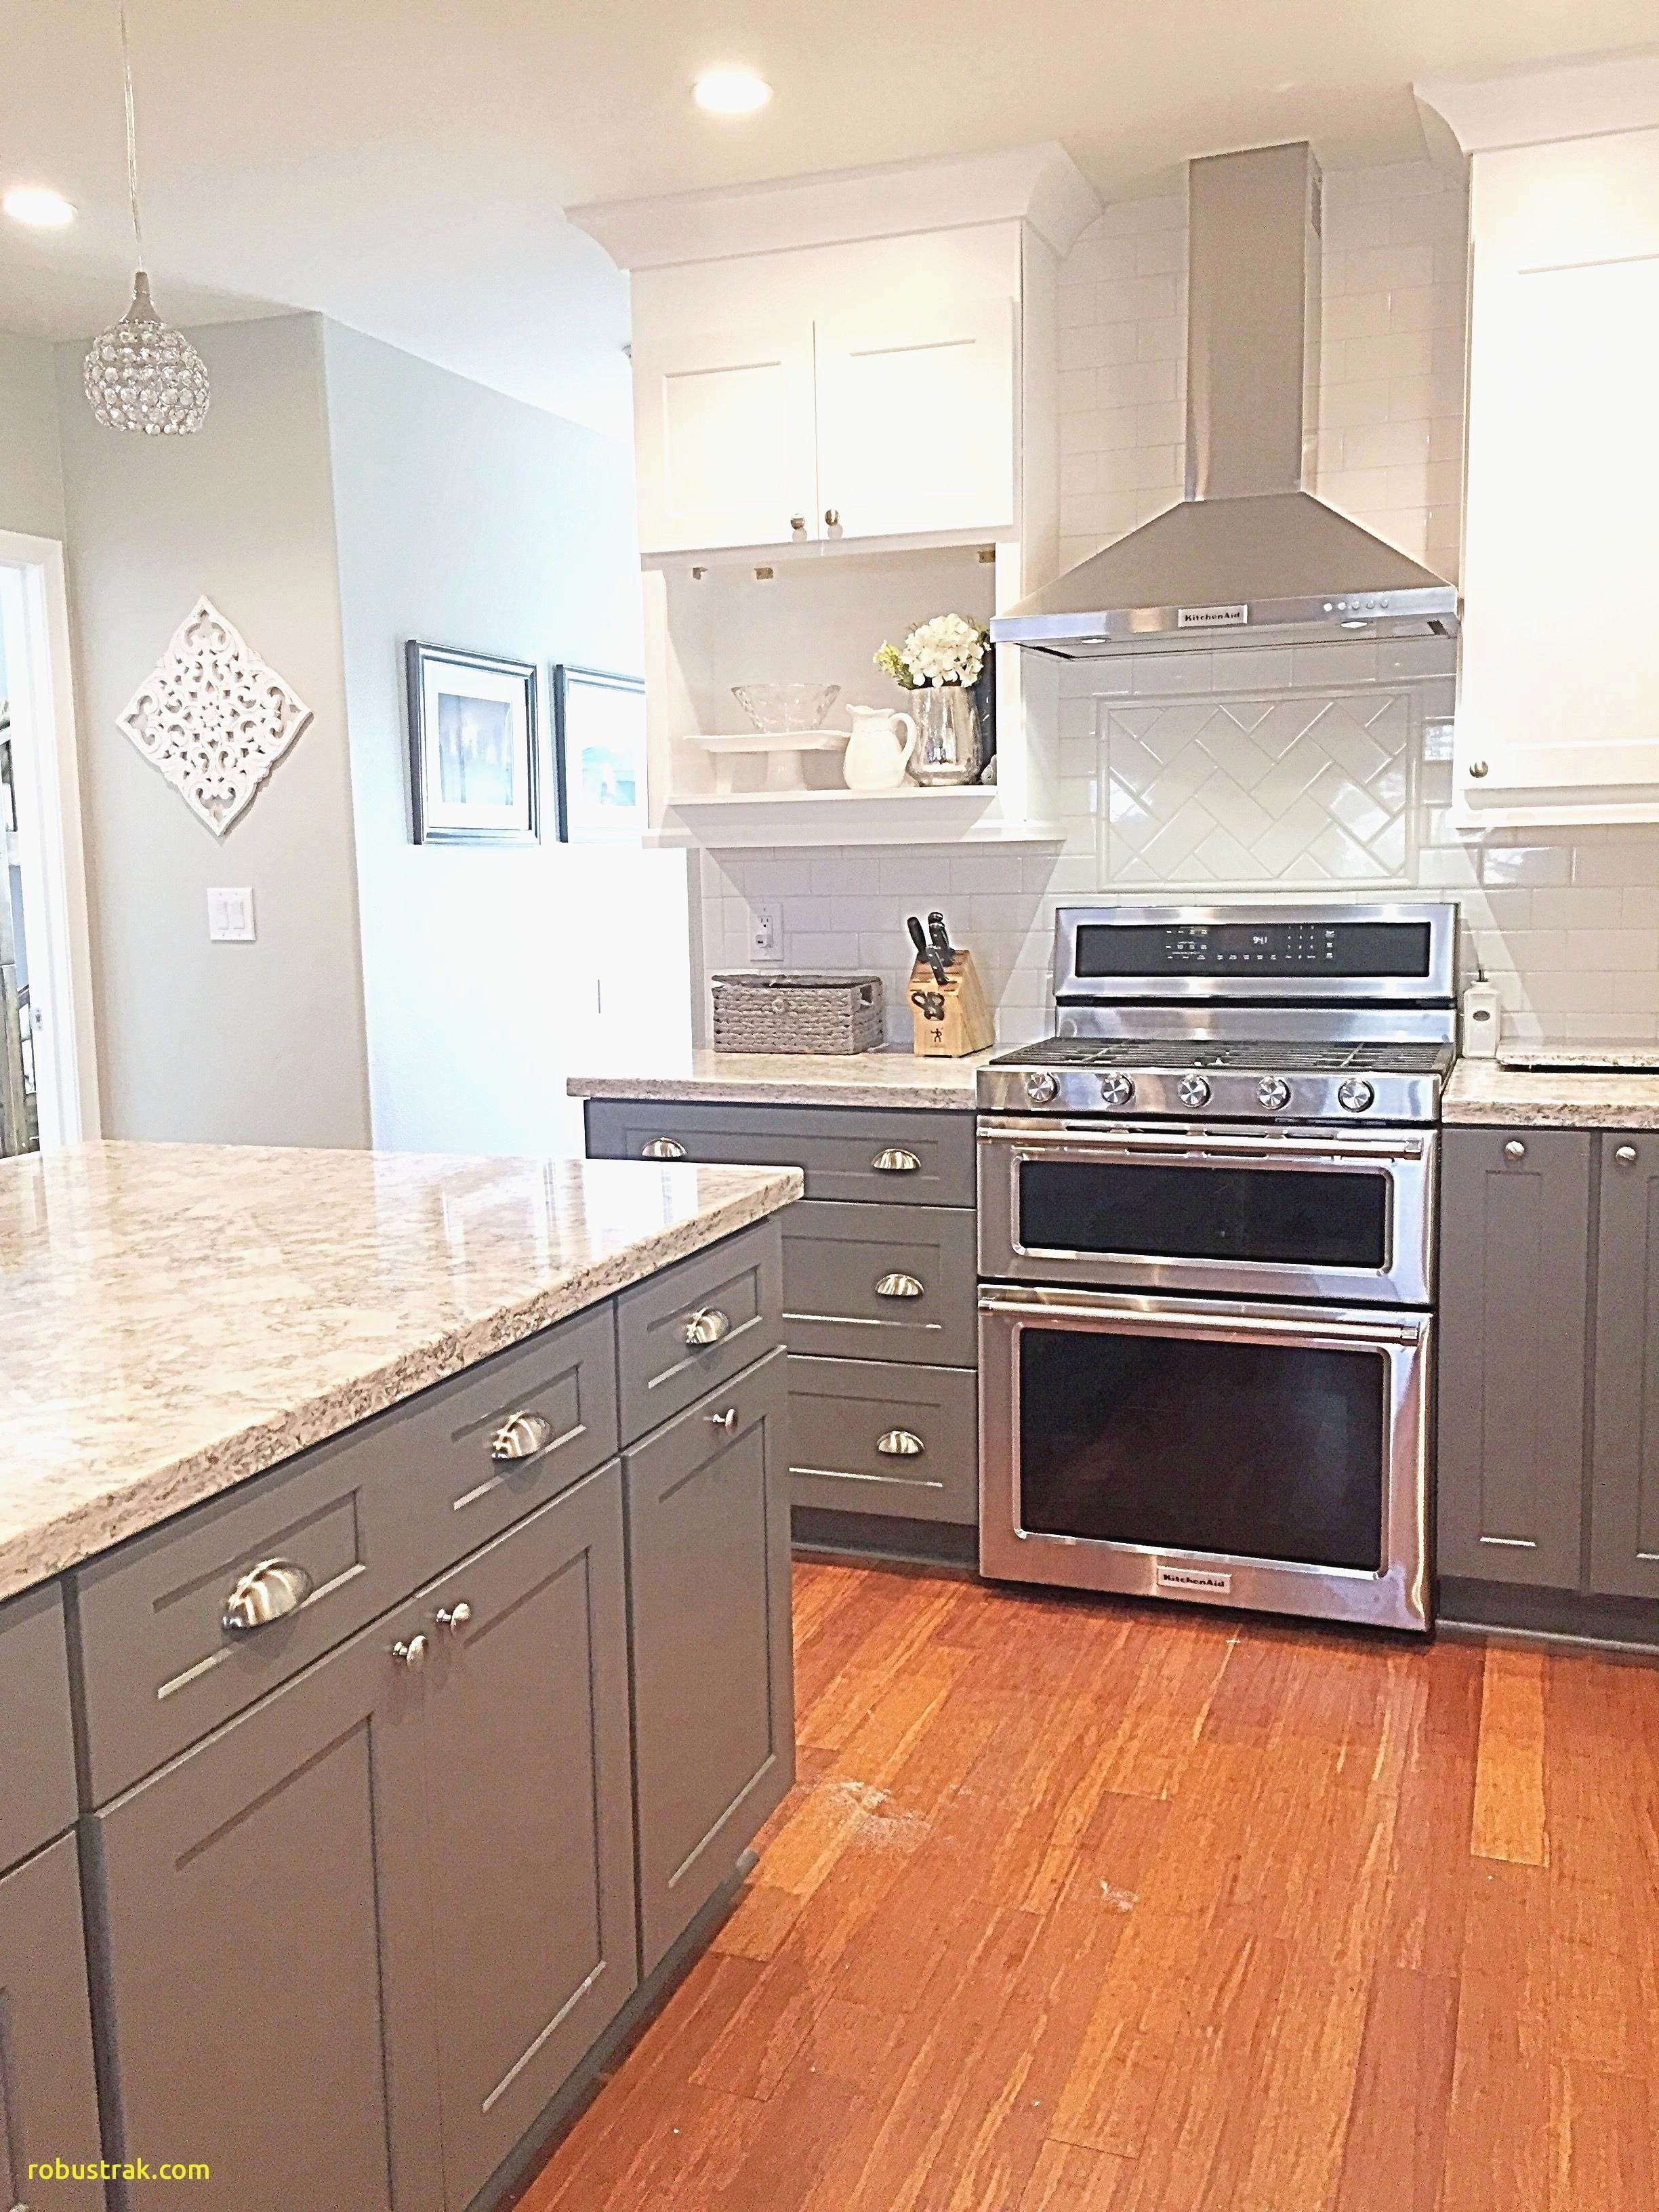 bruce armstrong engineered hardwood flooring of 18 inspirational hardwood flooring stock dizpos com in hardwood flooring awesome the most kitchen cabinet wood colors stock home ideas pictures